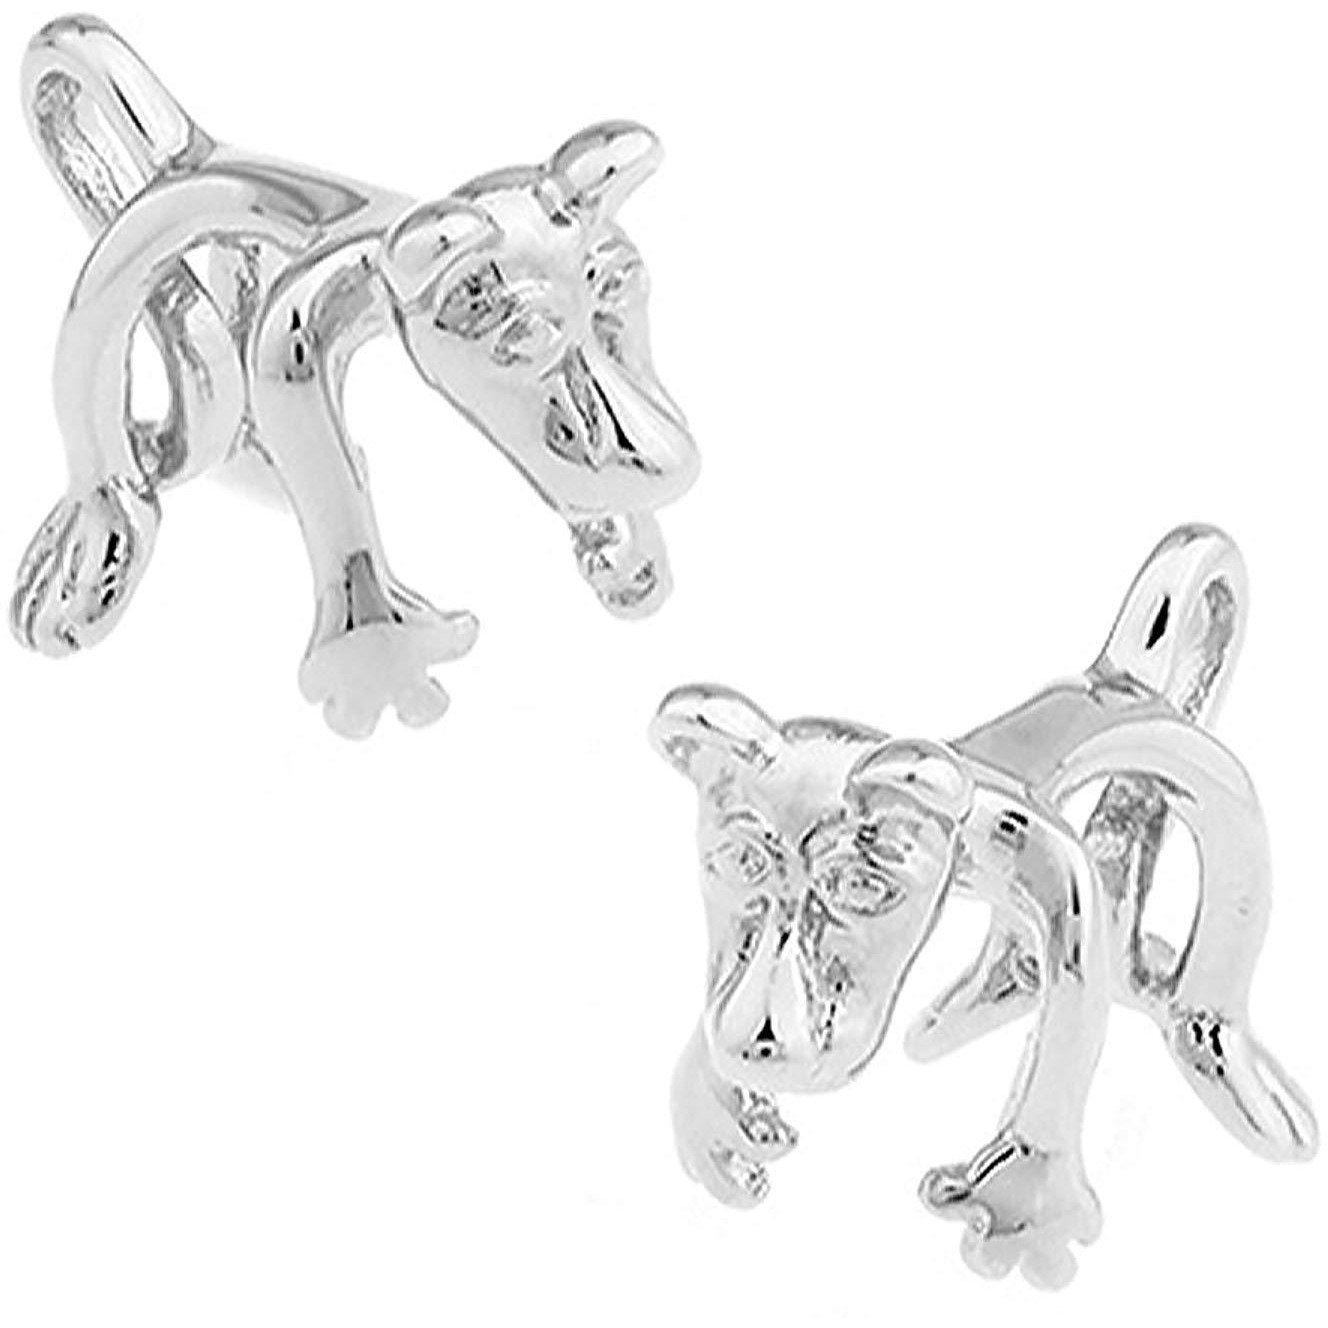 Silver Hound Dog Cufflinks